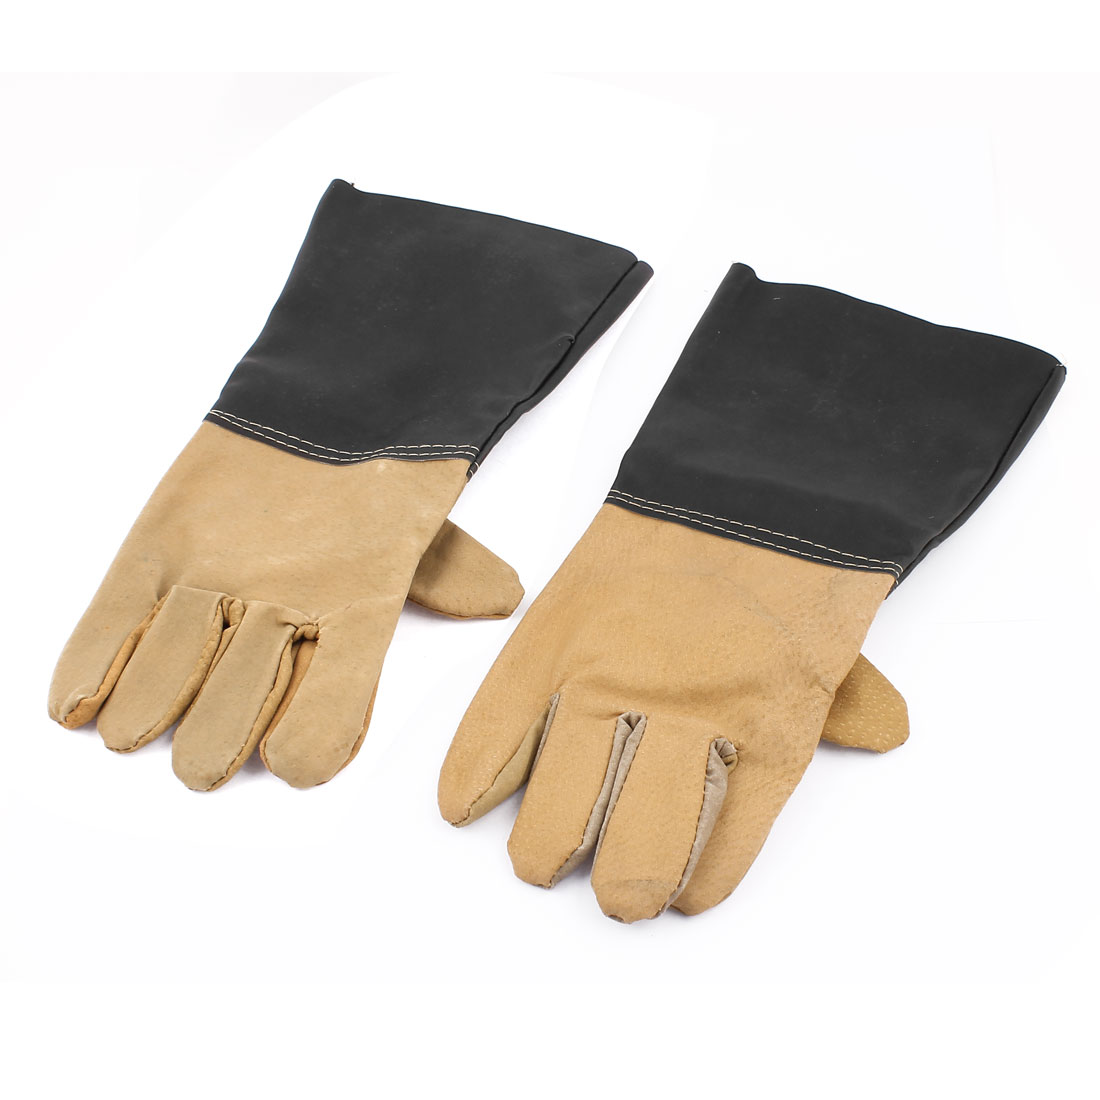 Protective Industry Anti Chemical Acid Alkali Rubber Work Gloves Black Pair